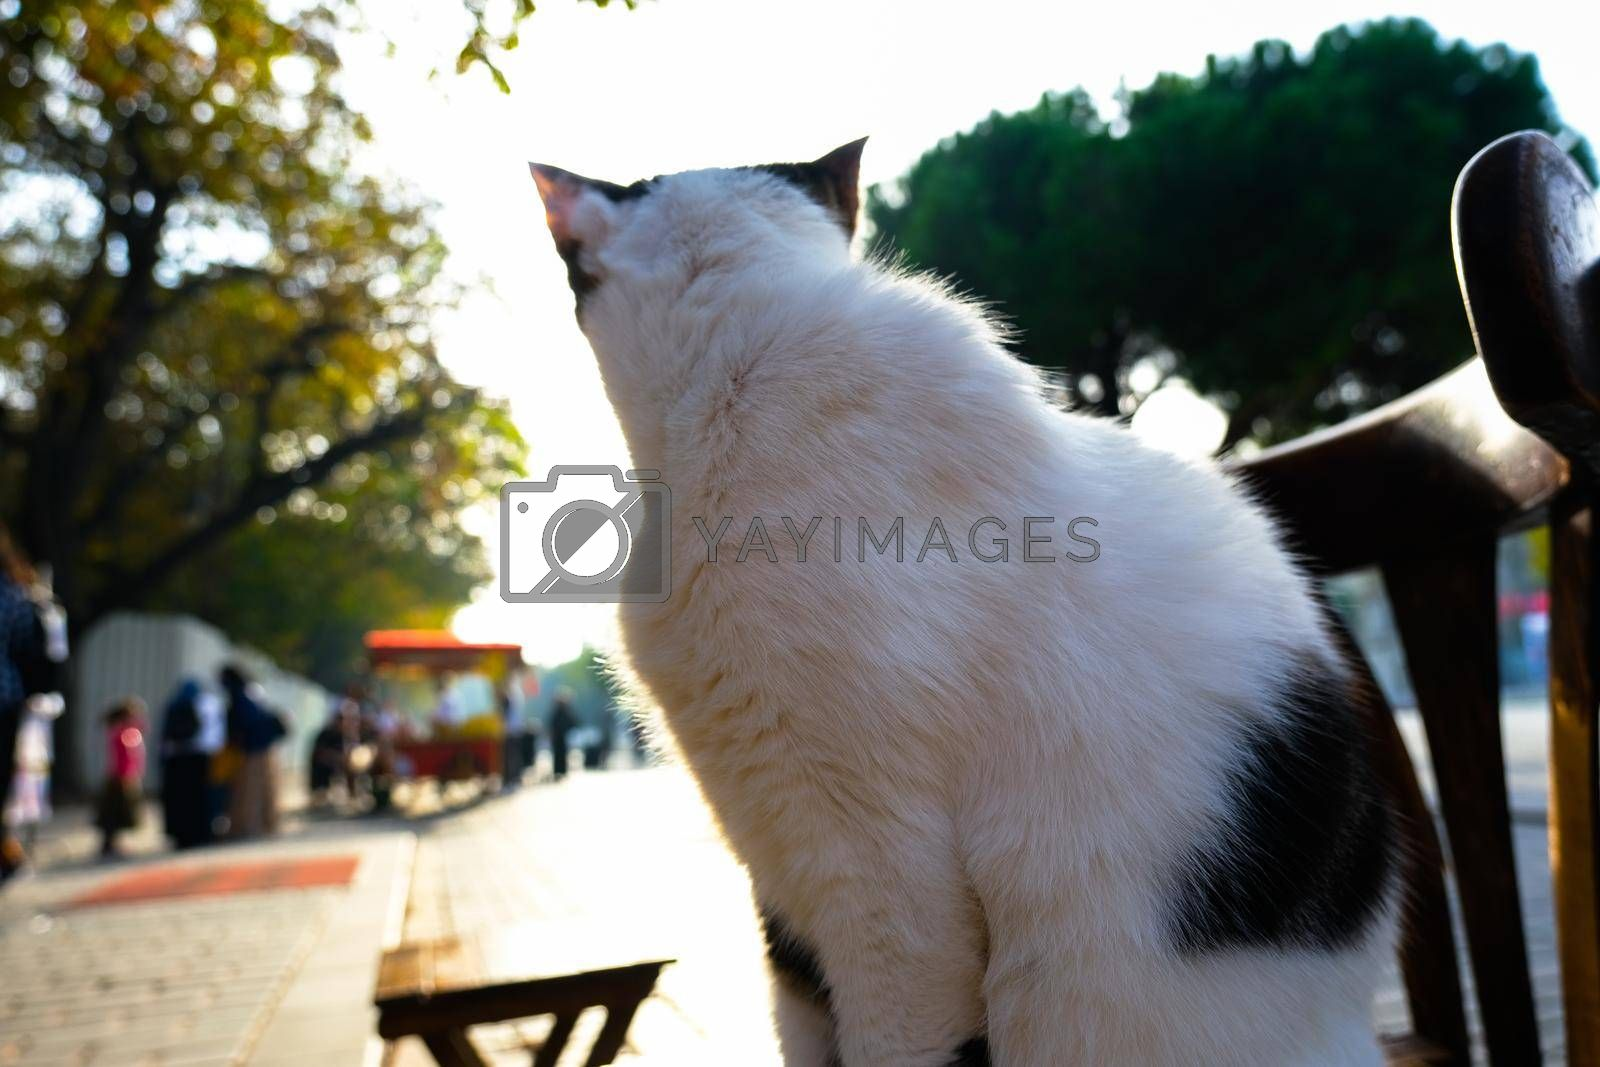 It depicts a white cat checking around